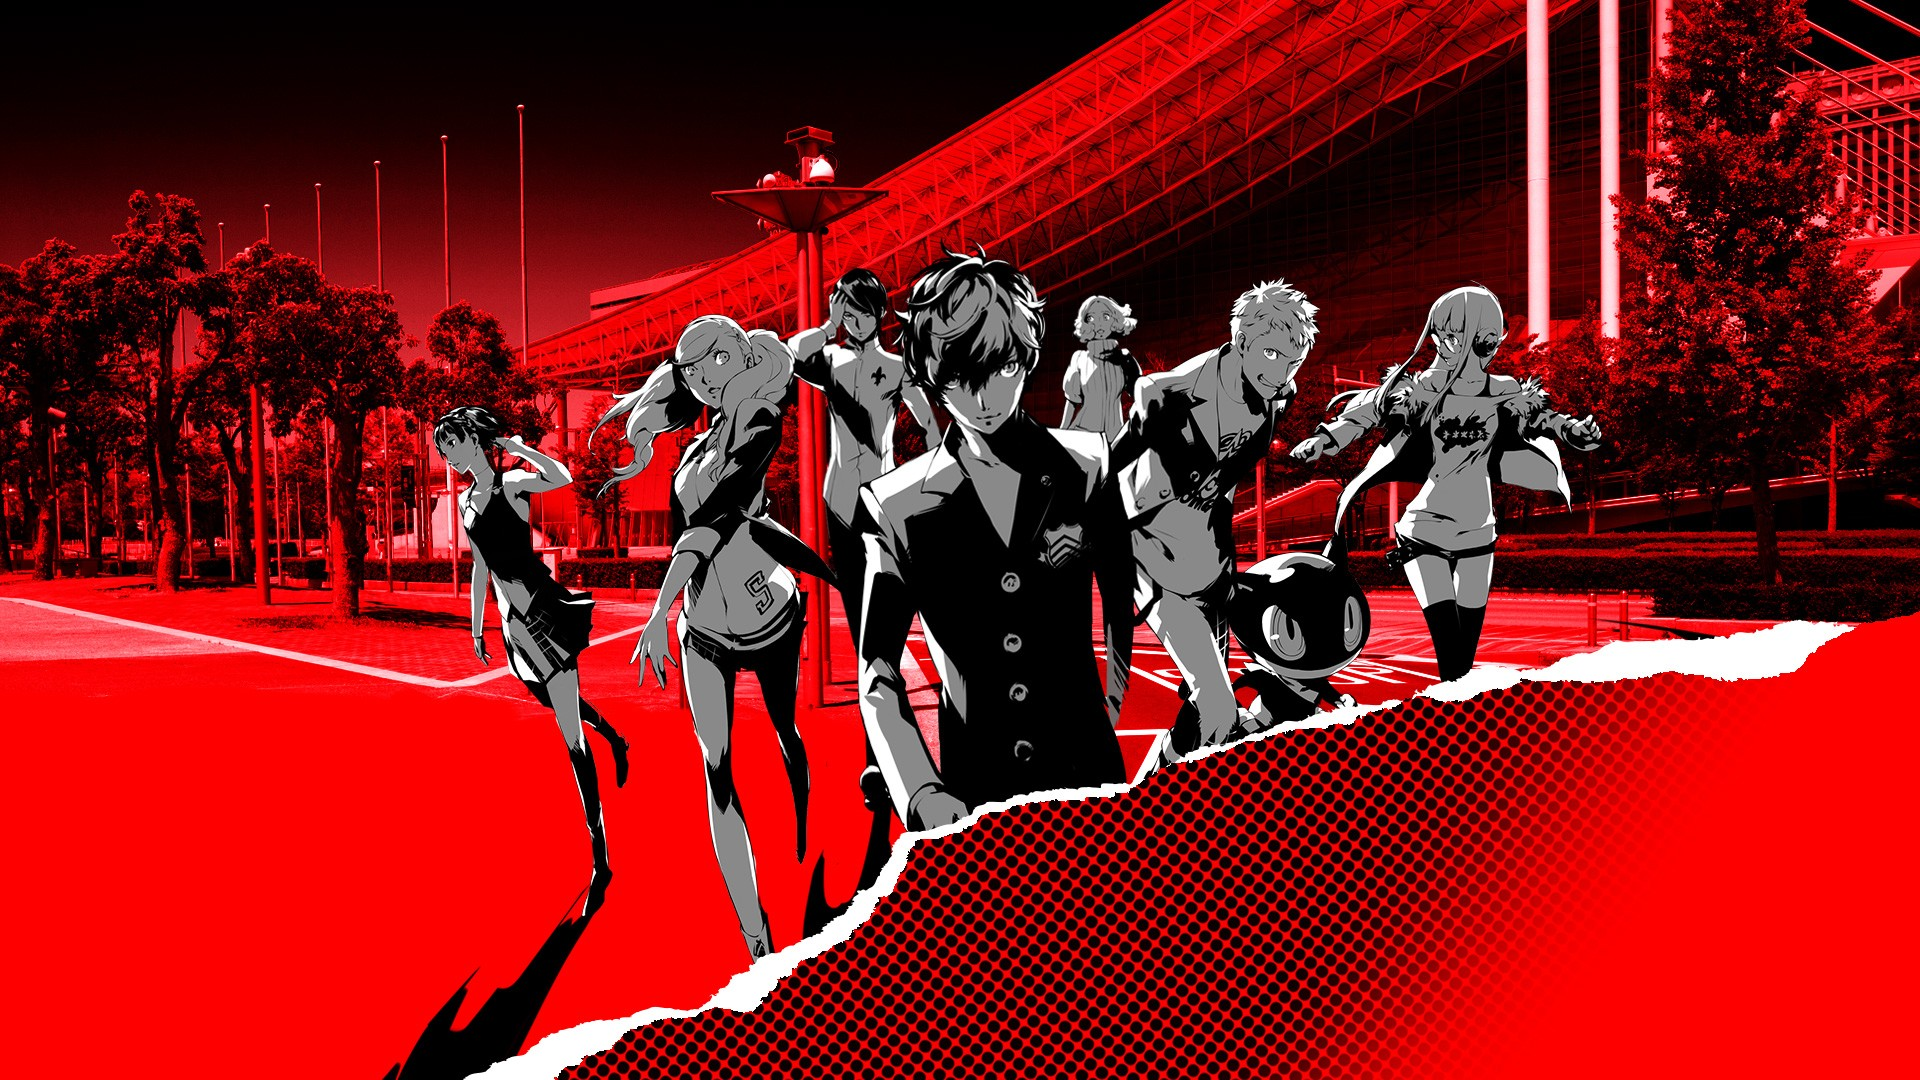 Persona 5 wallpaper download free full hd backgrounds - V wallpaper hd ...